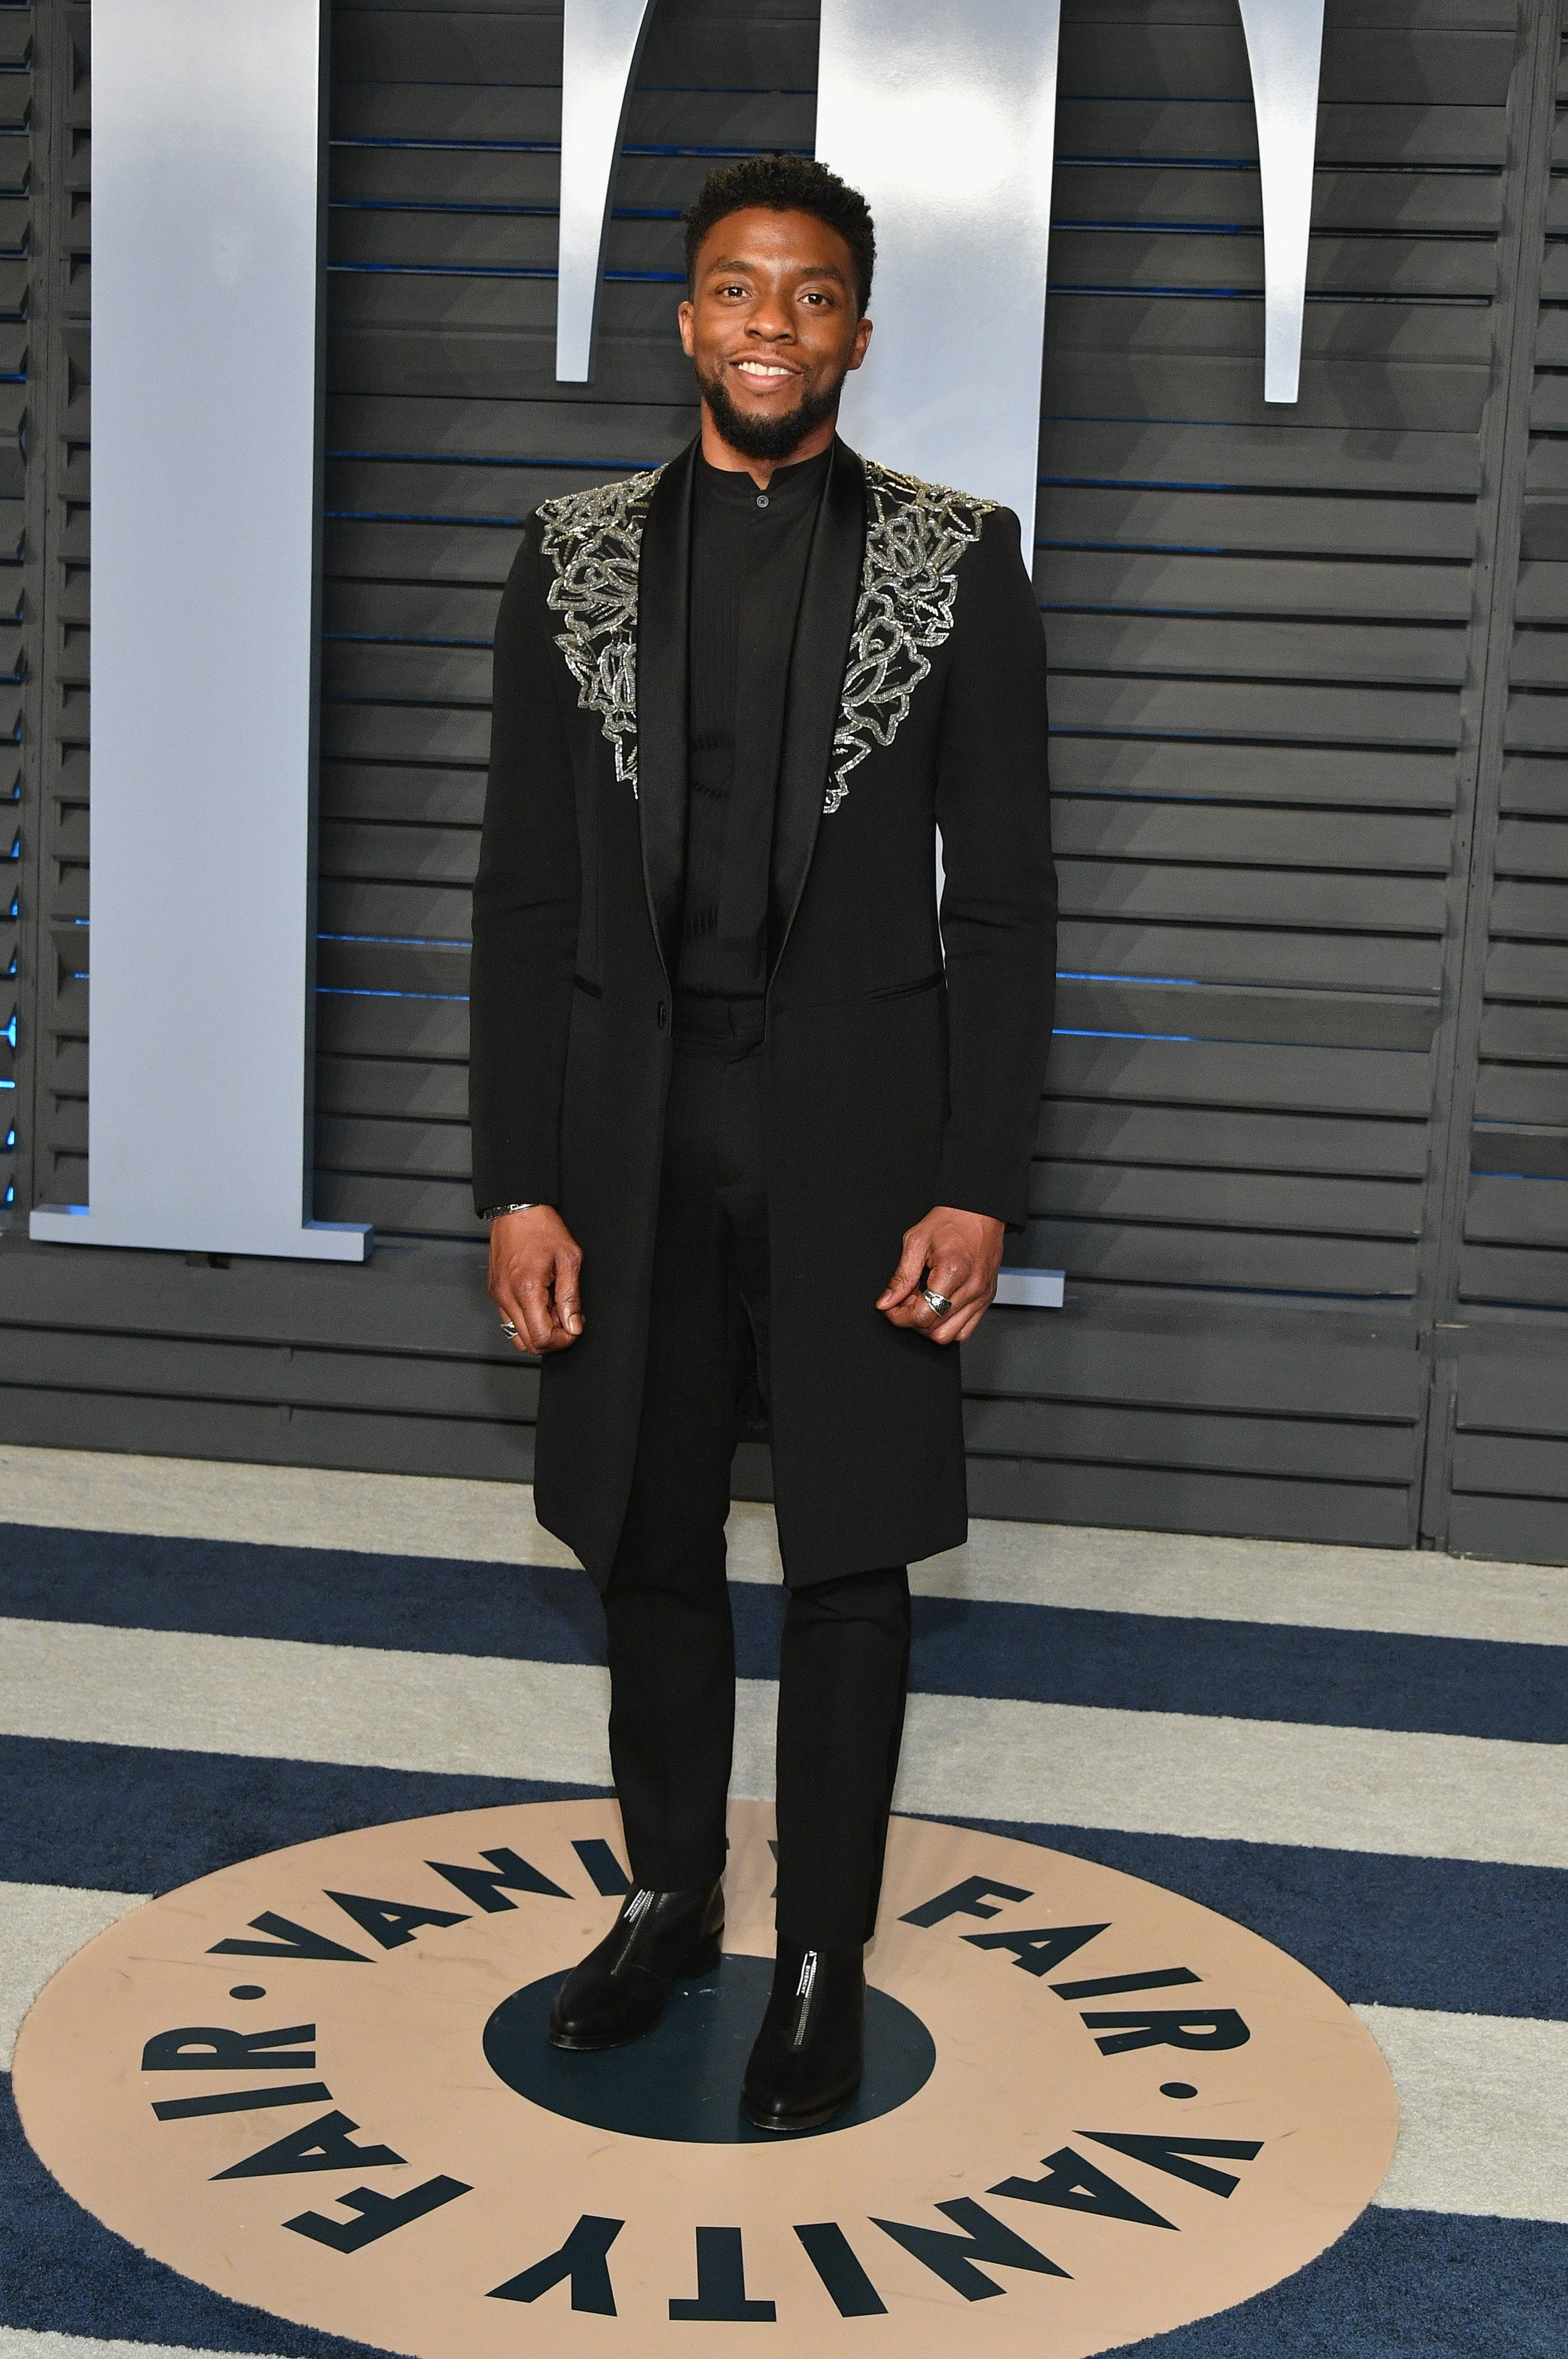 Image Credits: Getty Images / Dia Dipasupil | Chadwick Boseman attends the 2018 Vanity Fair Oscar Party hosted by Radhika Jones at Wallis Annenberg Center for the Performing Arts on March 4, 2018 in Beverly Hills, California.